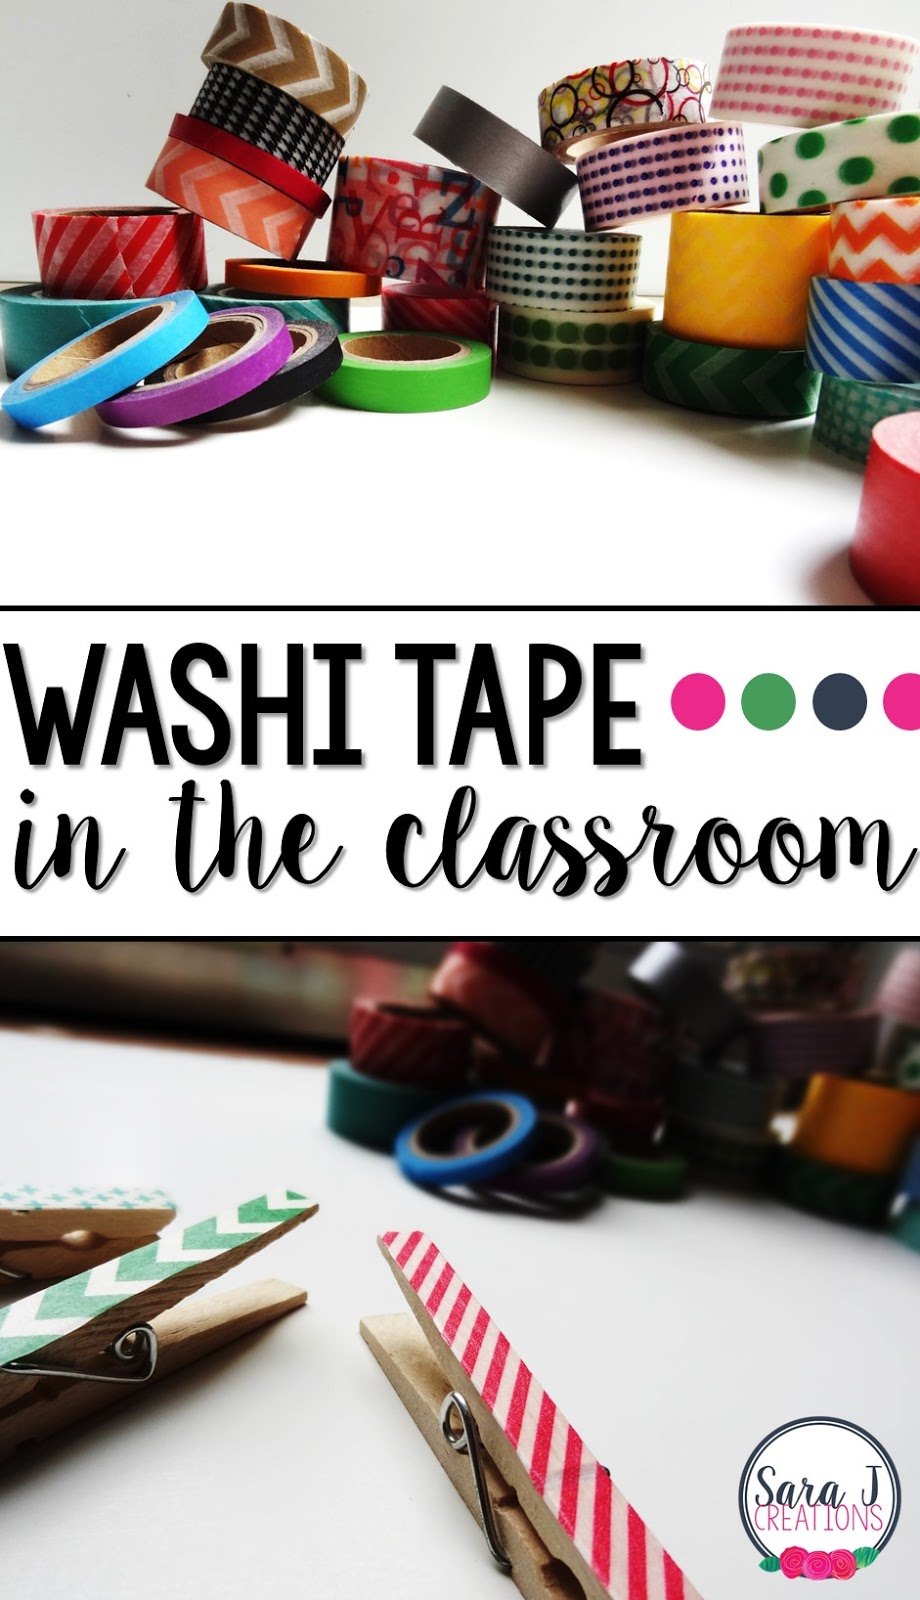 Ideas for using washi tape in the classroom.  Teachers this one is for you!